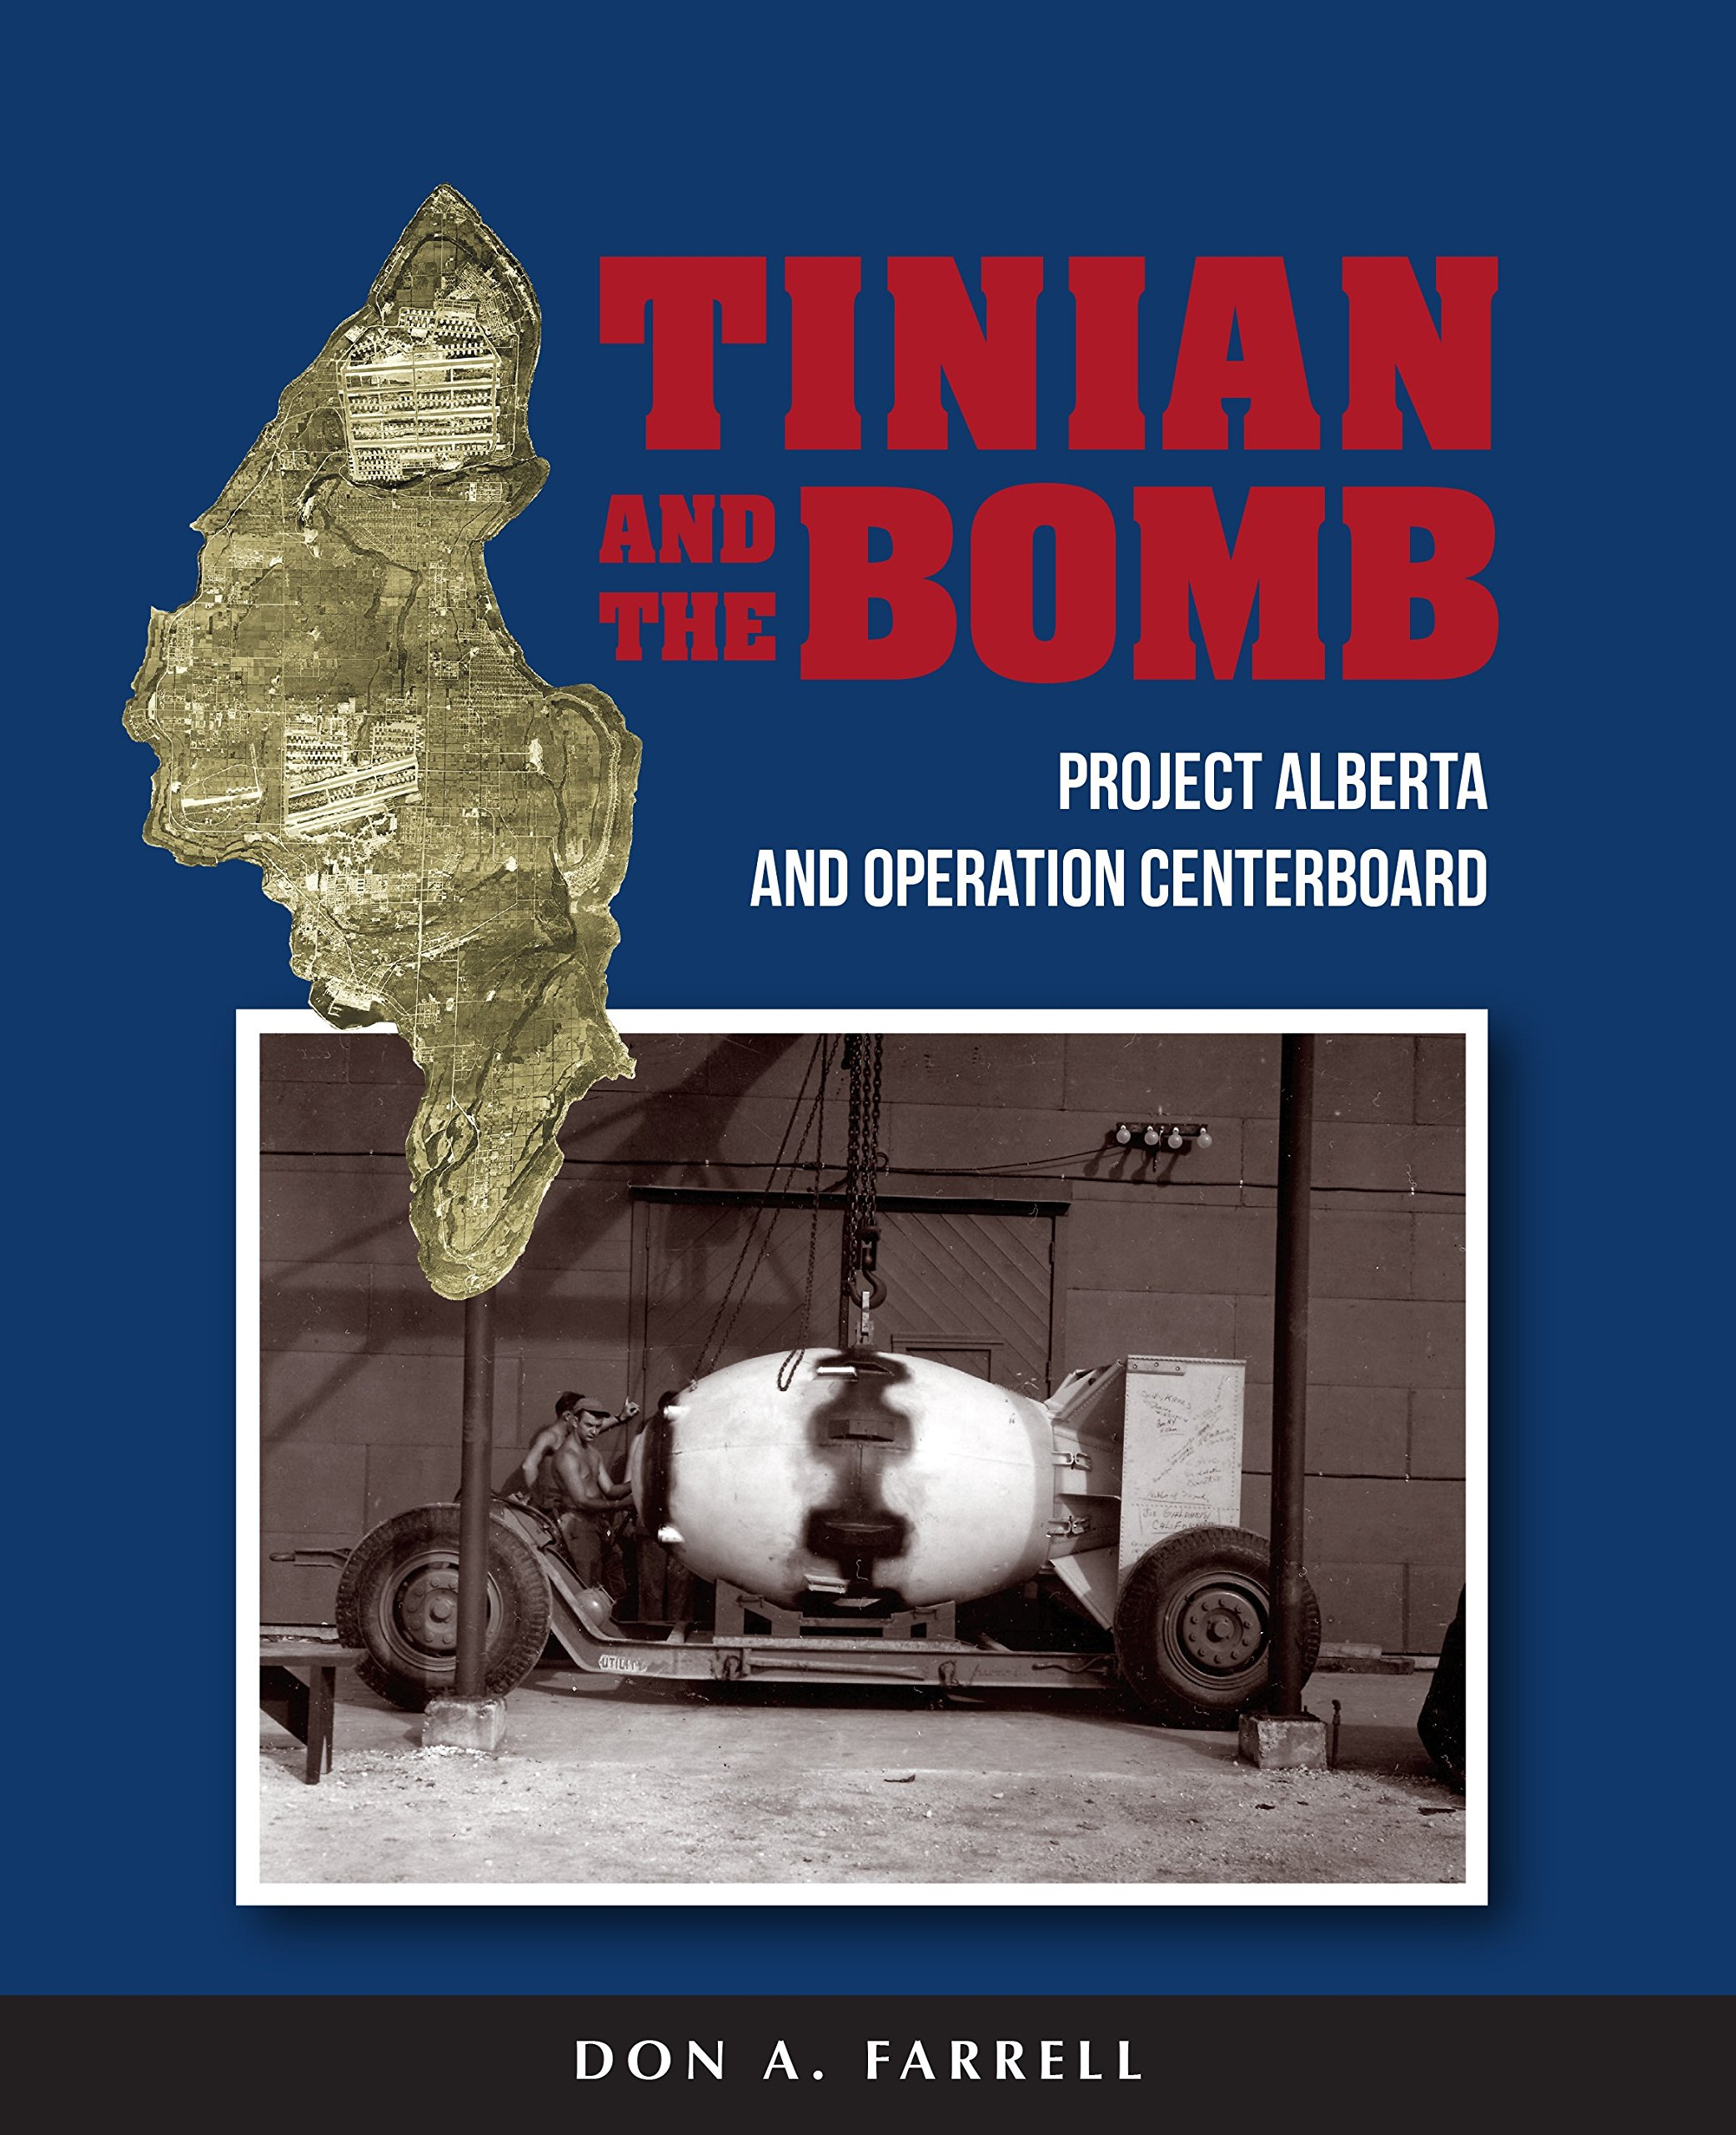 Tinian and the Bomb: Project Alberta and Operation Centerboard: Don A.  Farrell, Dr. Gordon E. Castanza, Dr. Robert A. Underwood: Amazon.com: Books